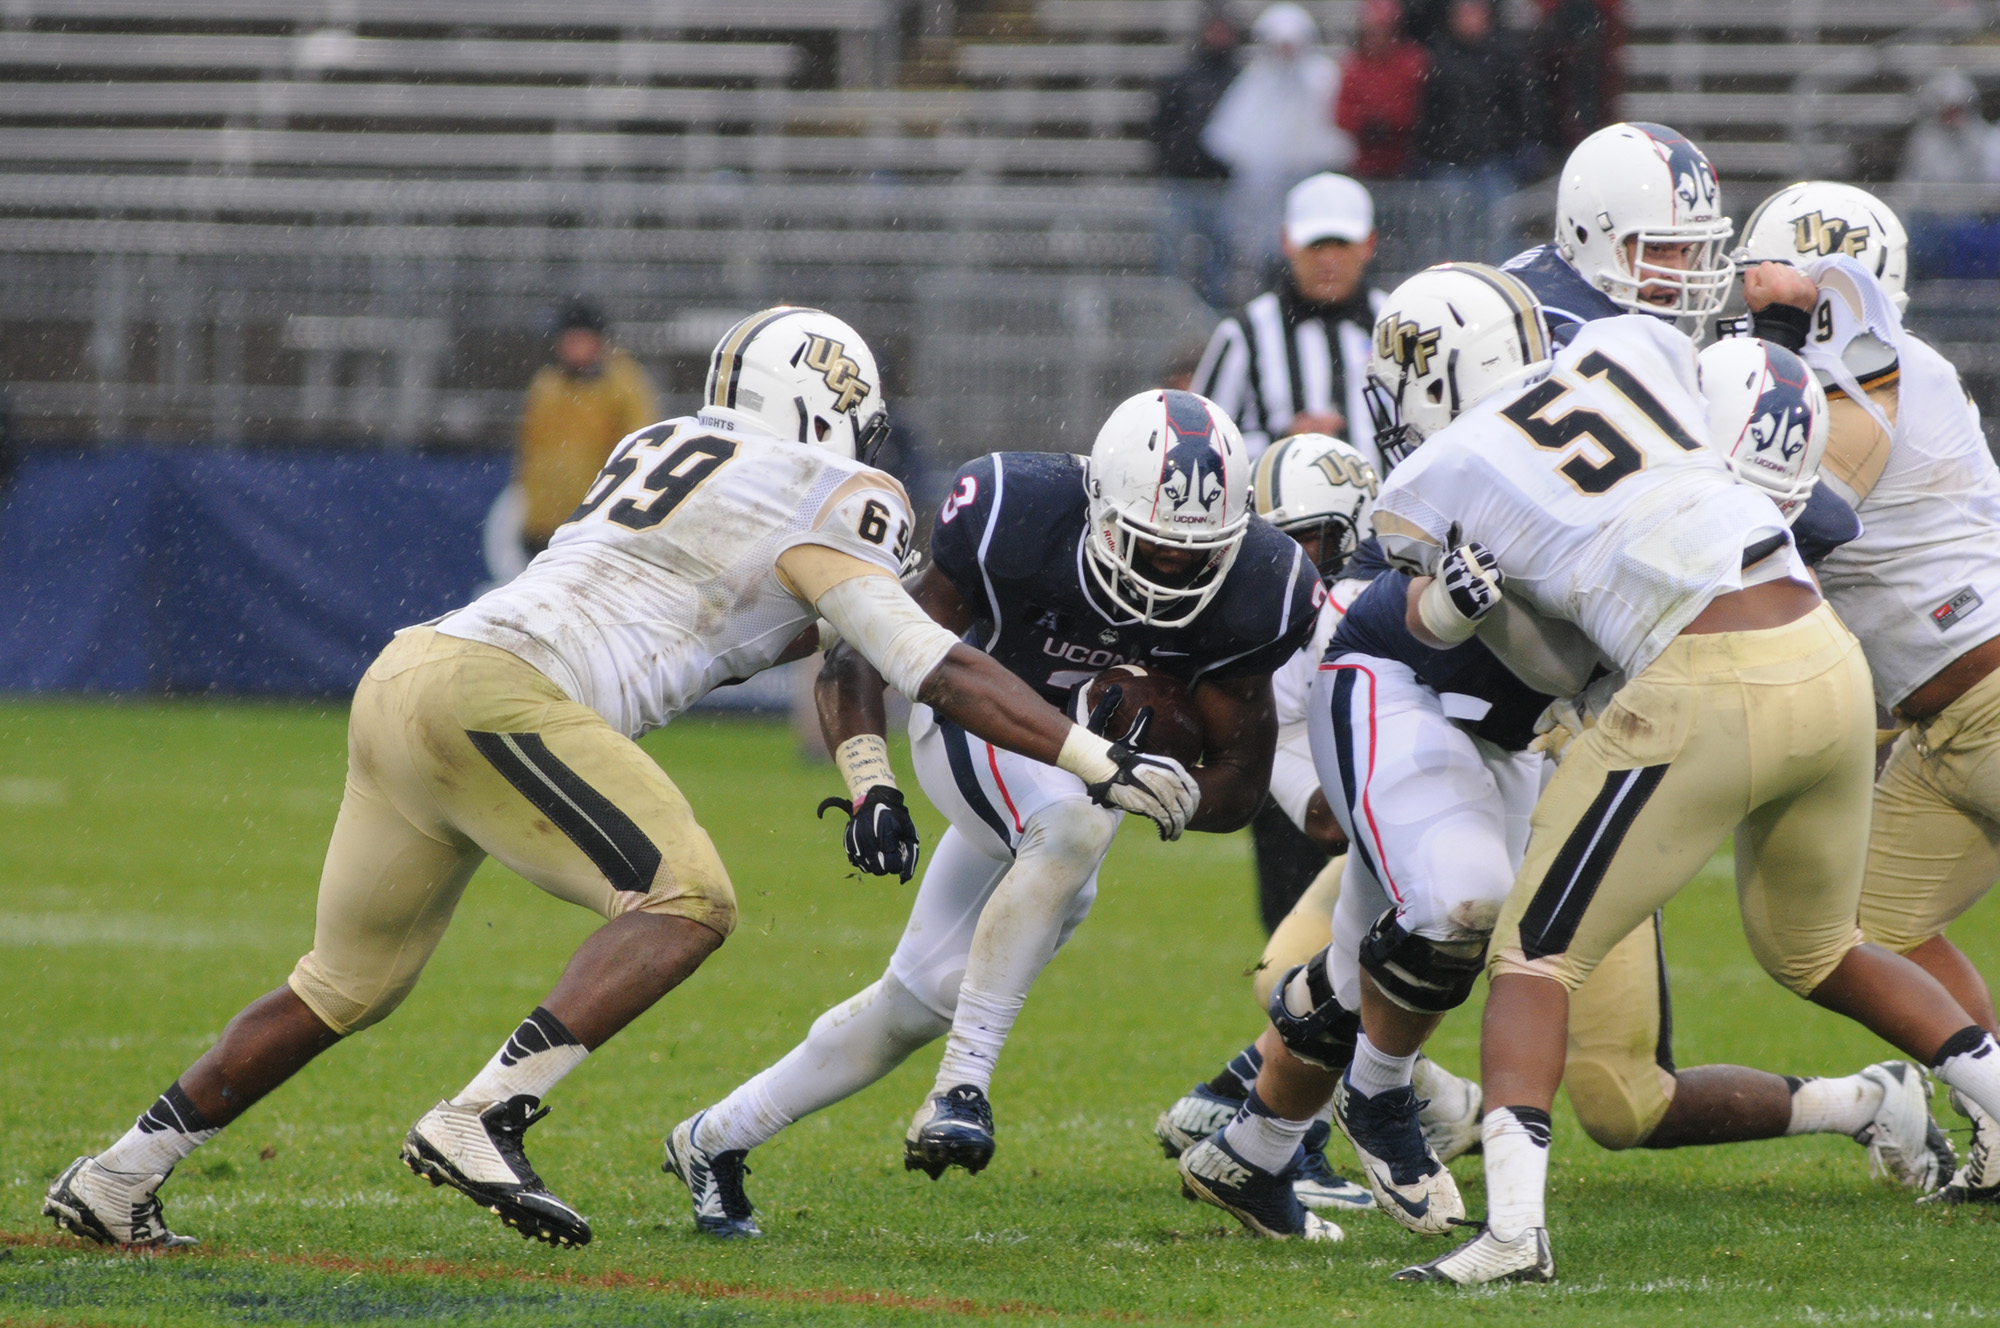 UConn running back Ron Johnson (3) against UCF defensive Thomas Niles (69) and Chris Larsen (51) at Rentschler Field Nov. 1, 2014. UConn plays UCF on Saturday in what head coach Bob Diaco has deemed the Civil Conflict.(Troy Caldeira/ The Daily Campus)